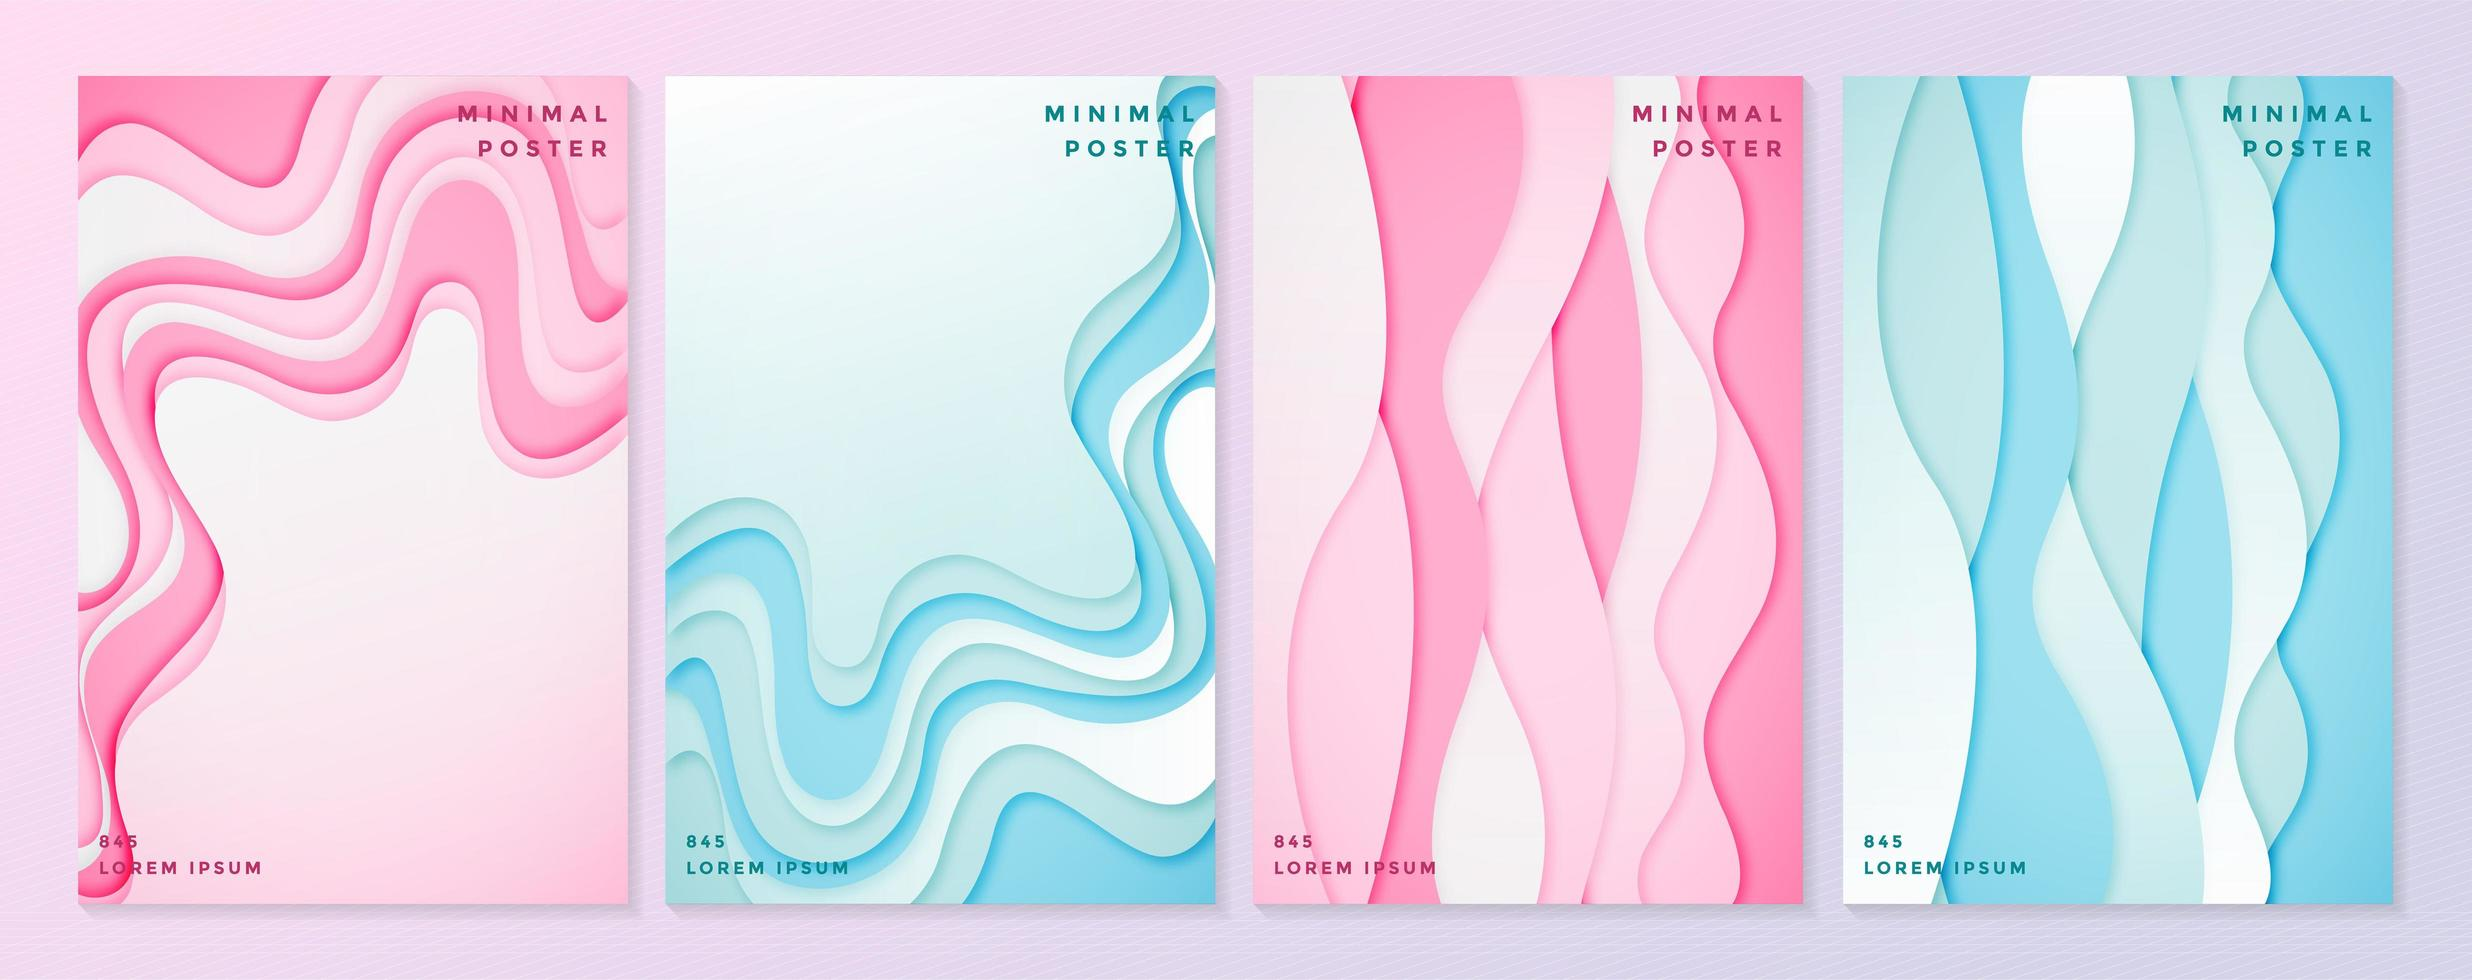 Pink and blue poster templates with wavy paper cut style vector